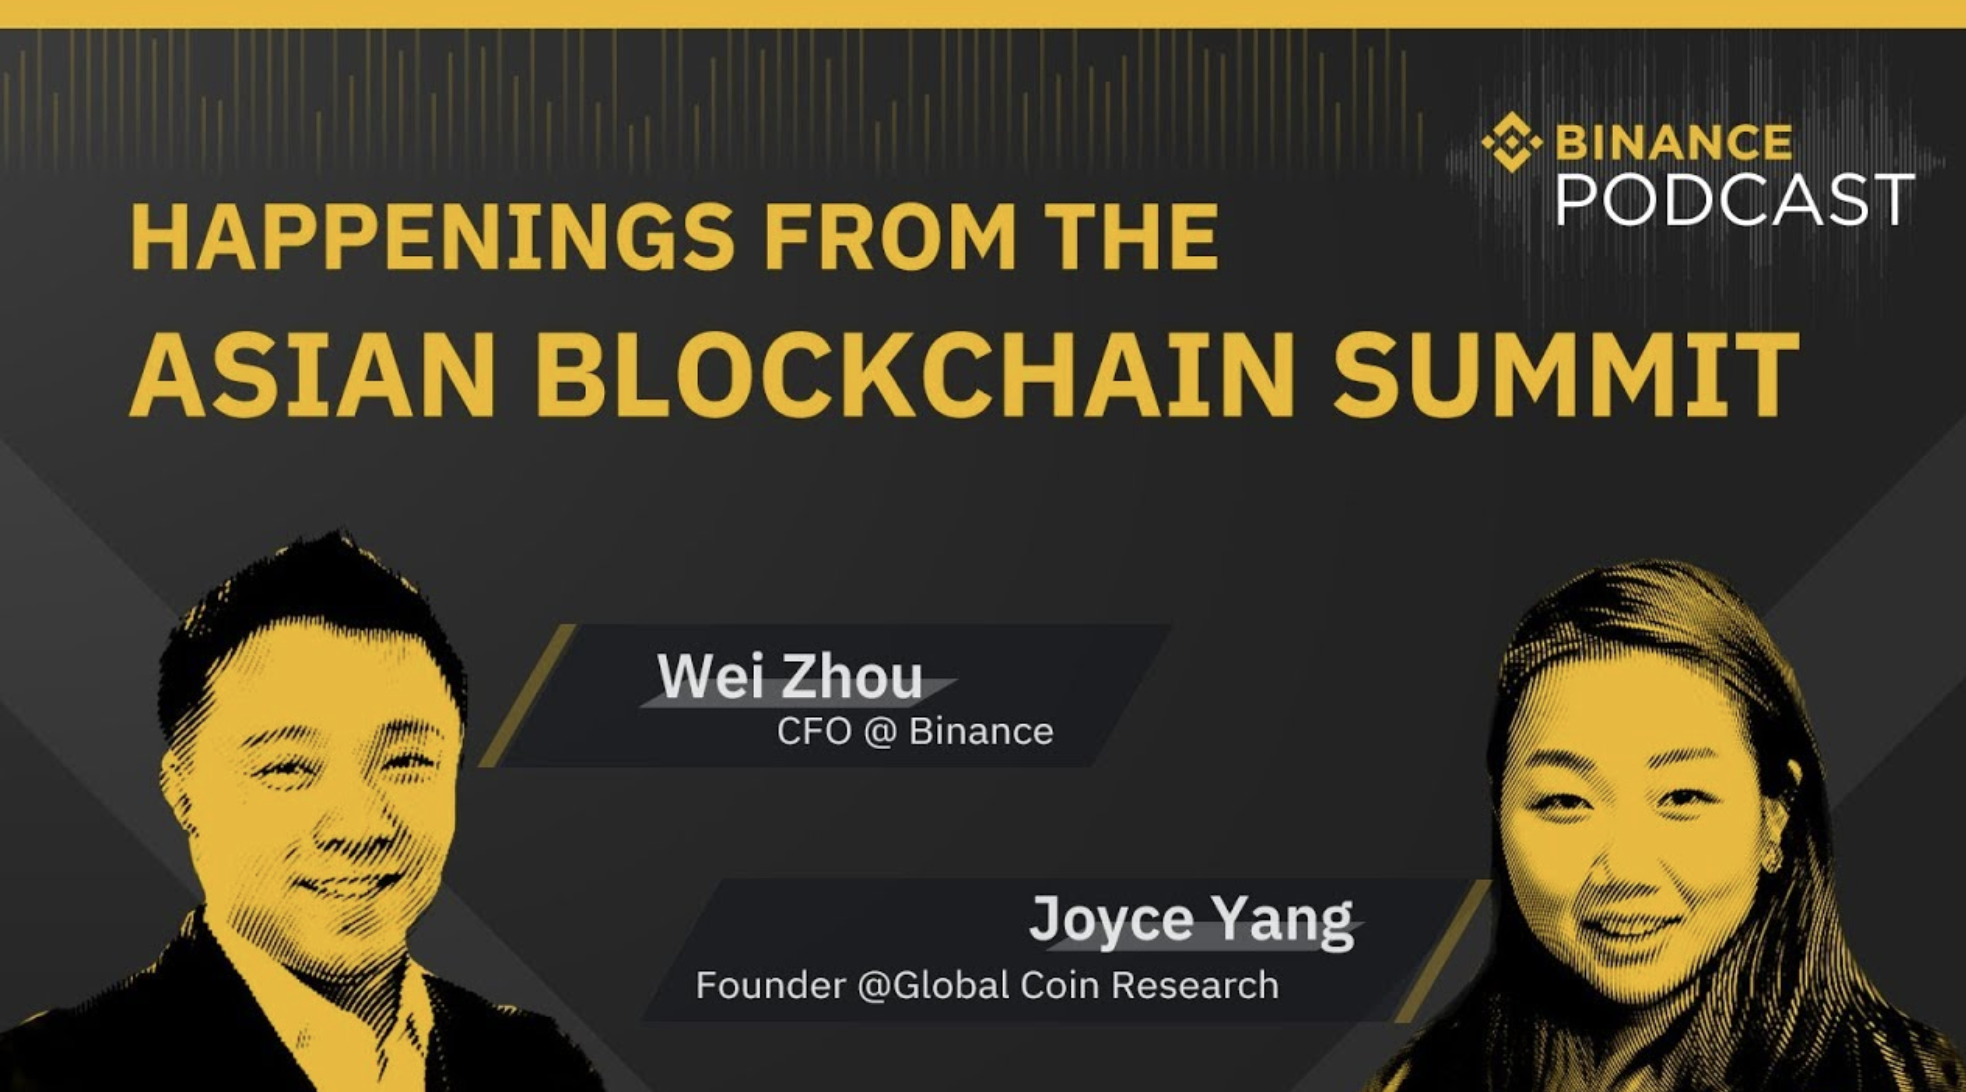 With CFO of Binance Wei Zhou on the Happenings from the Asian